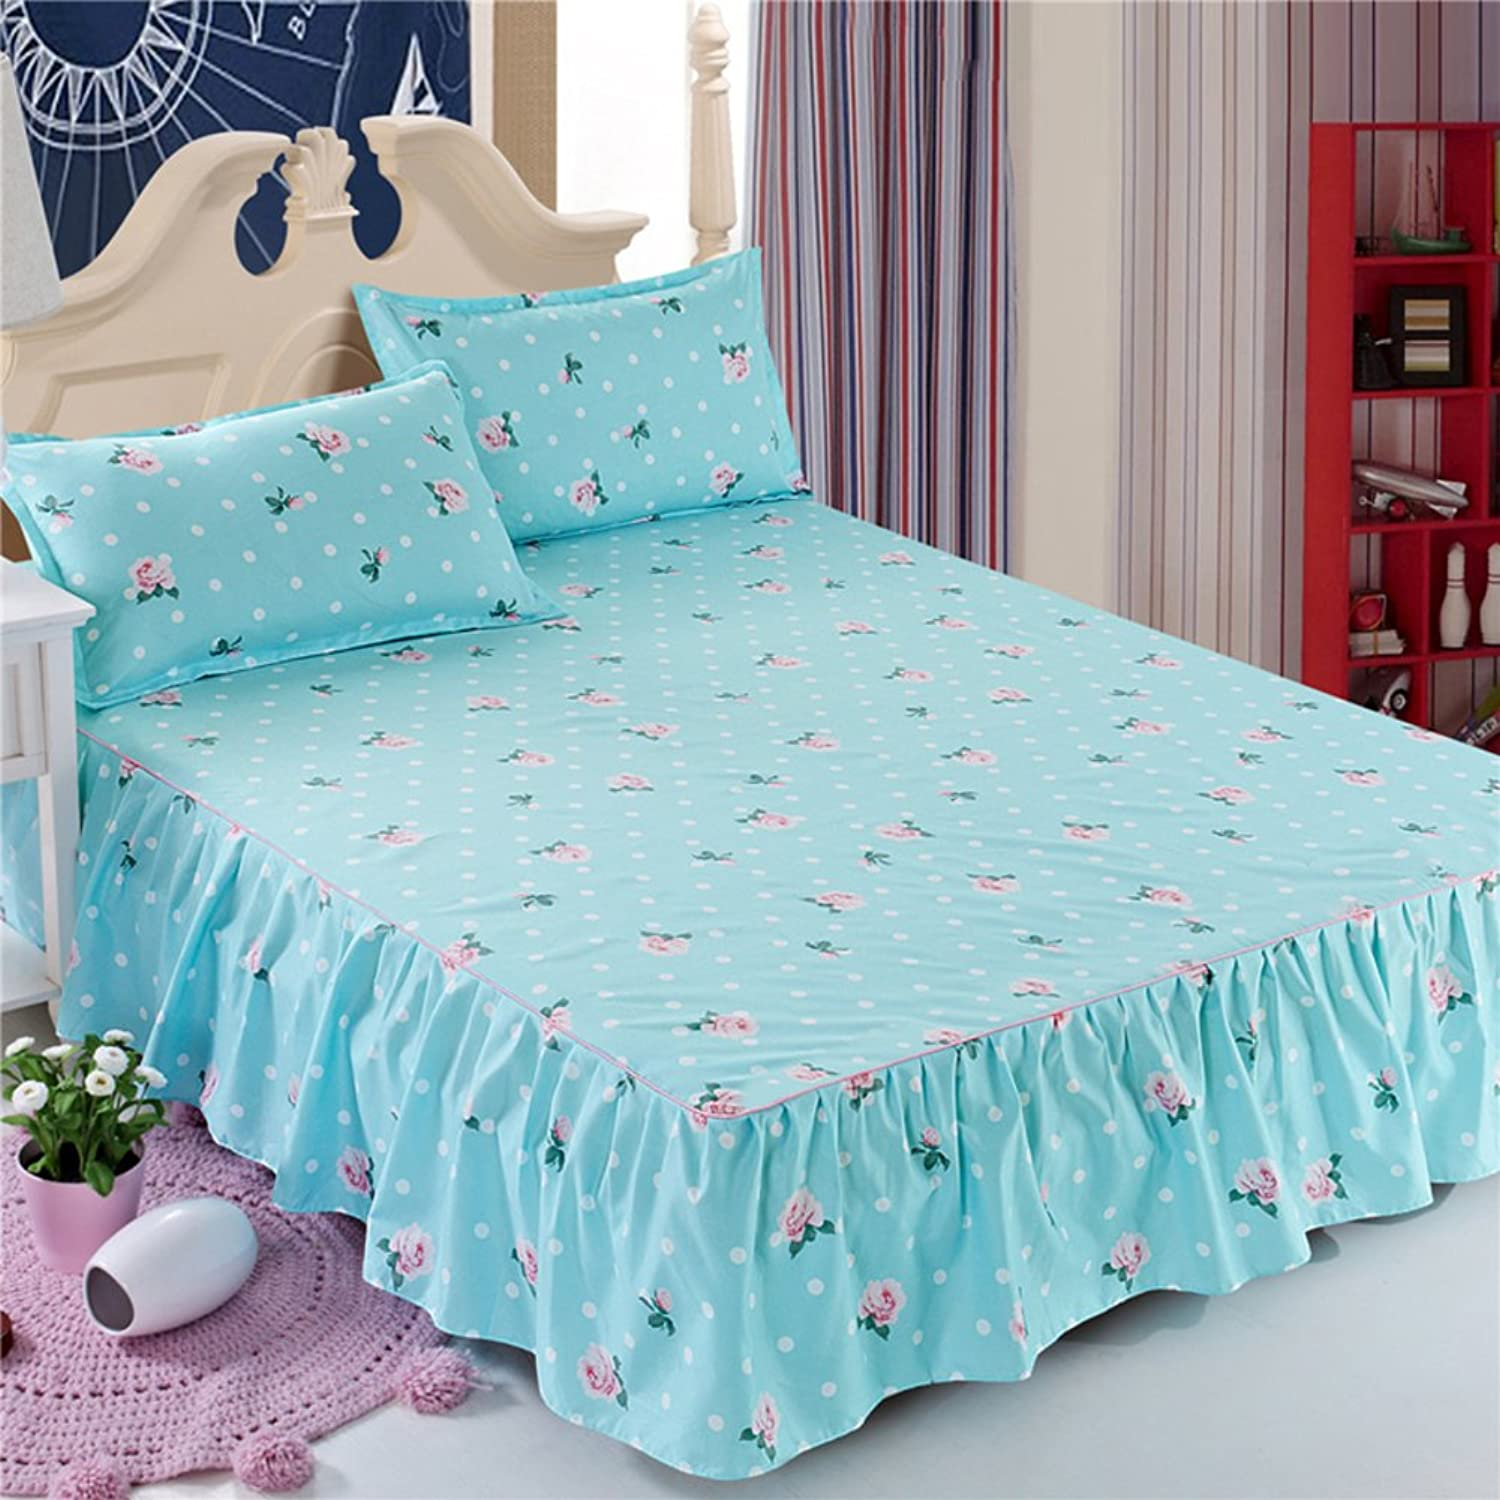 GX&XD Bed Skirt Bedspread Bed Sets Single Bed Cover Sheet-X 180x200cm(71x79inch)